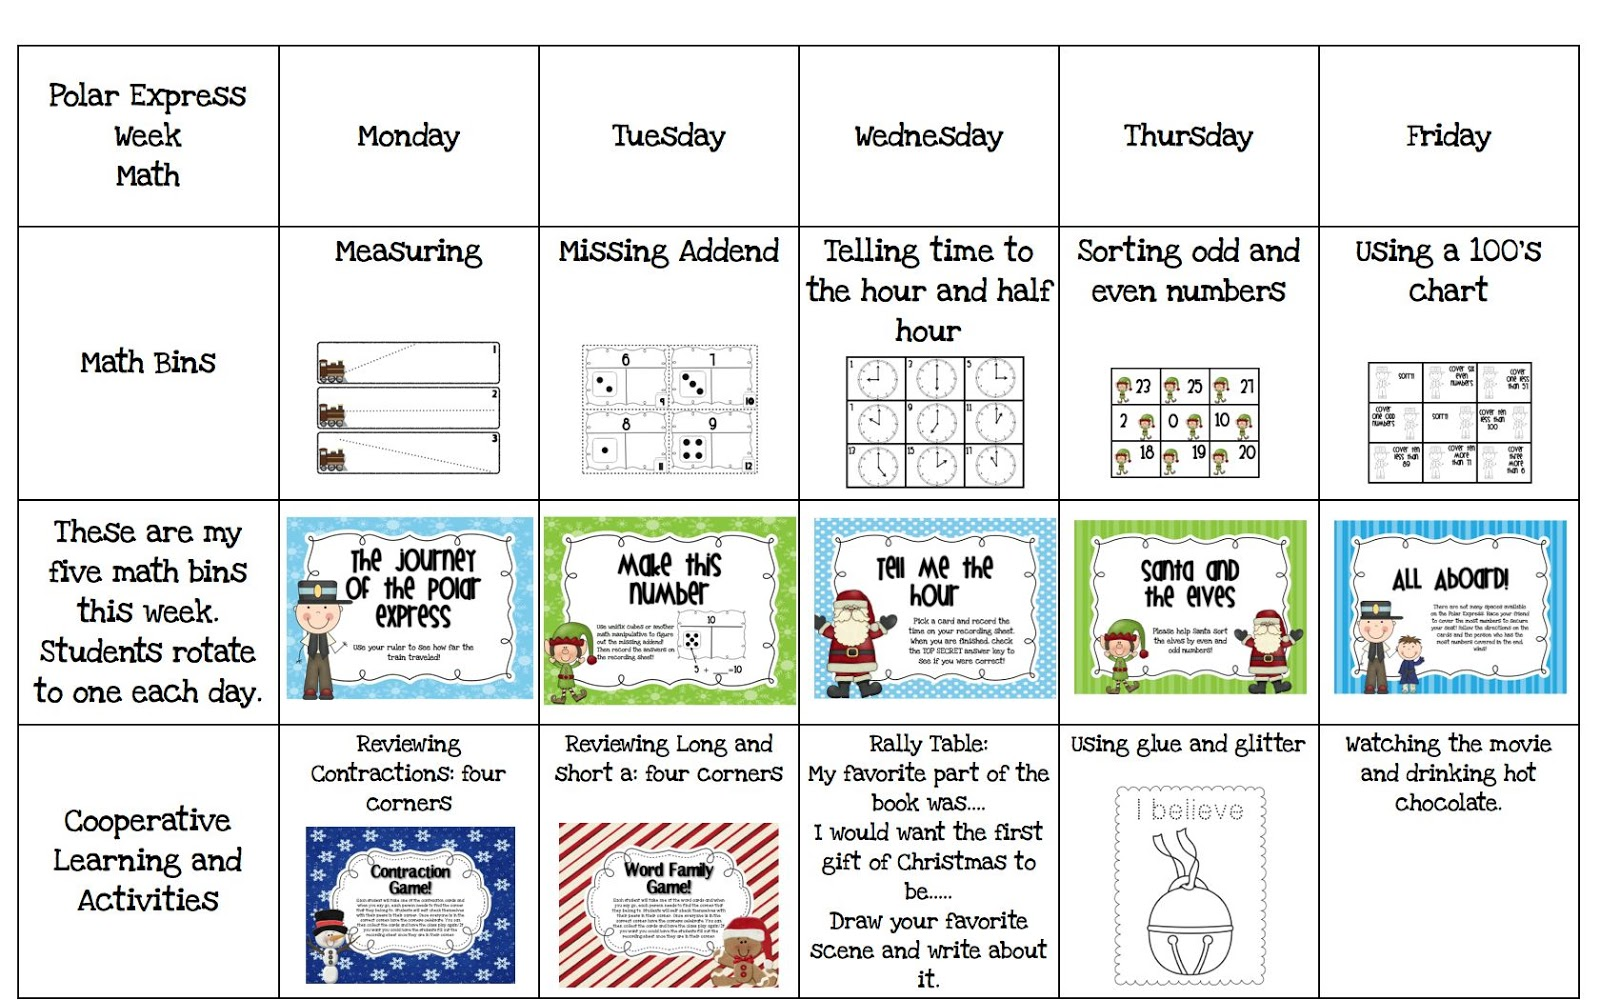 math worksheet : a day in first grade  polar express week! : Polar Express Math Worksheets